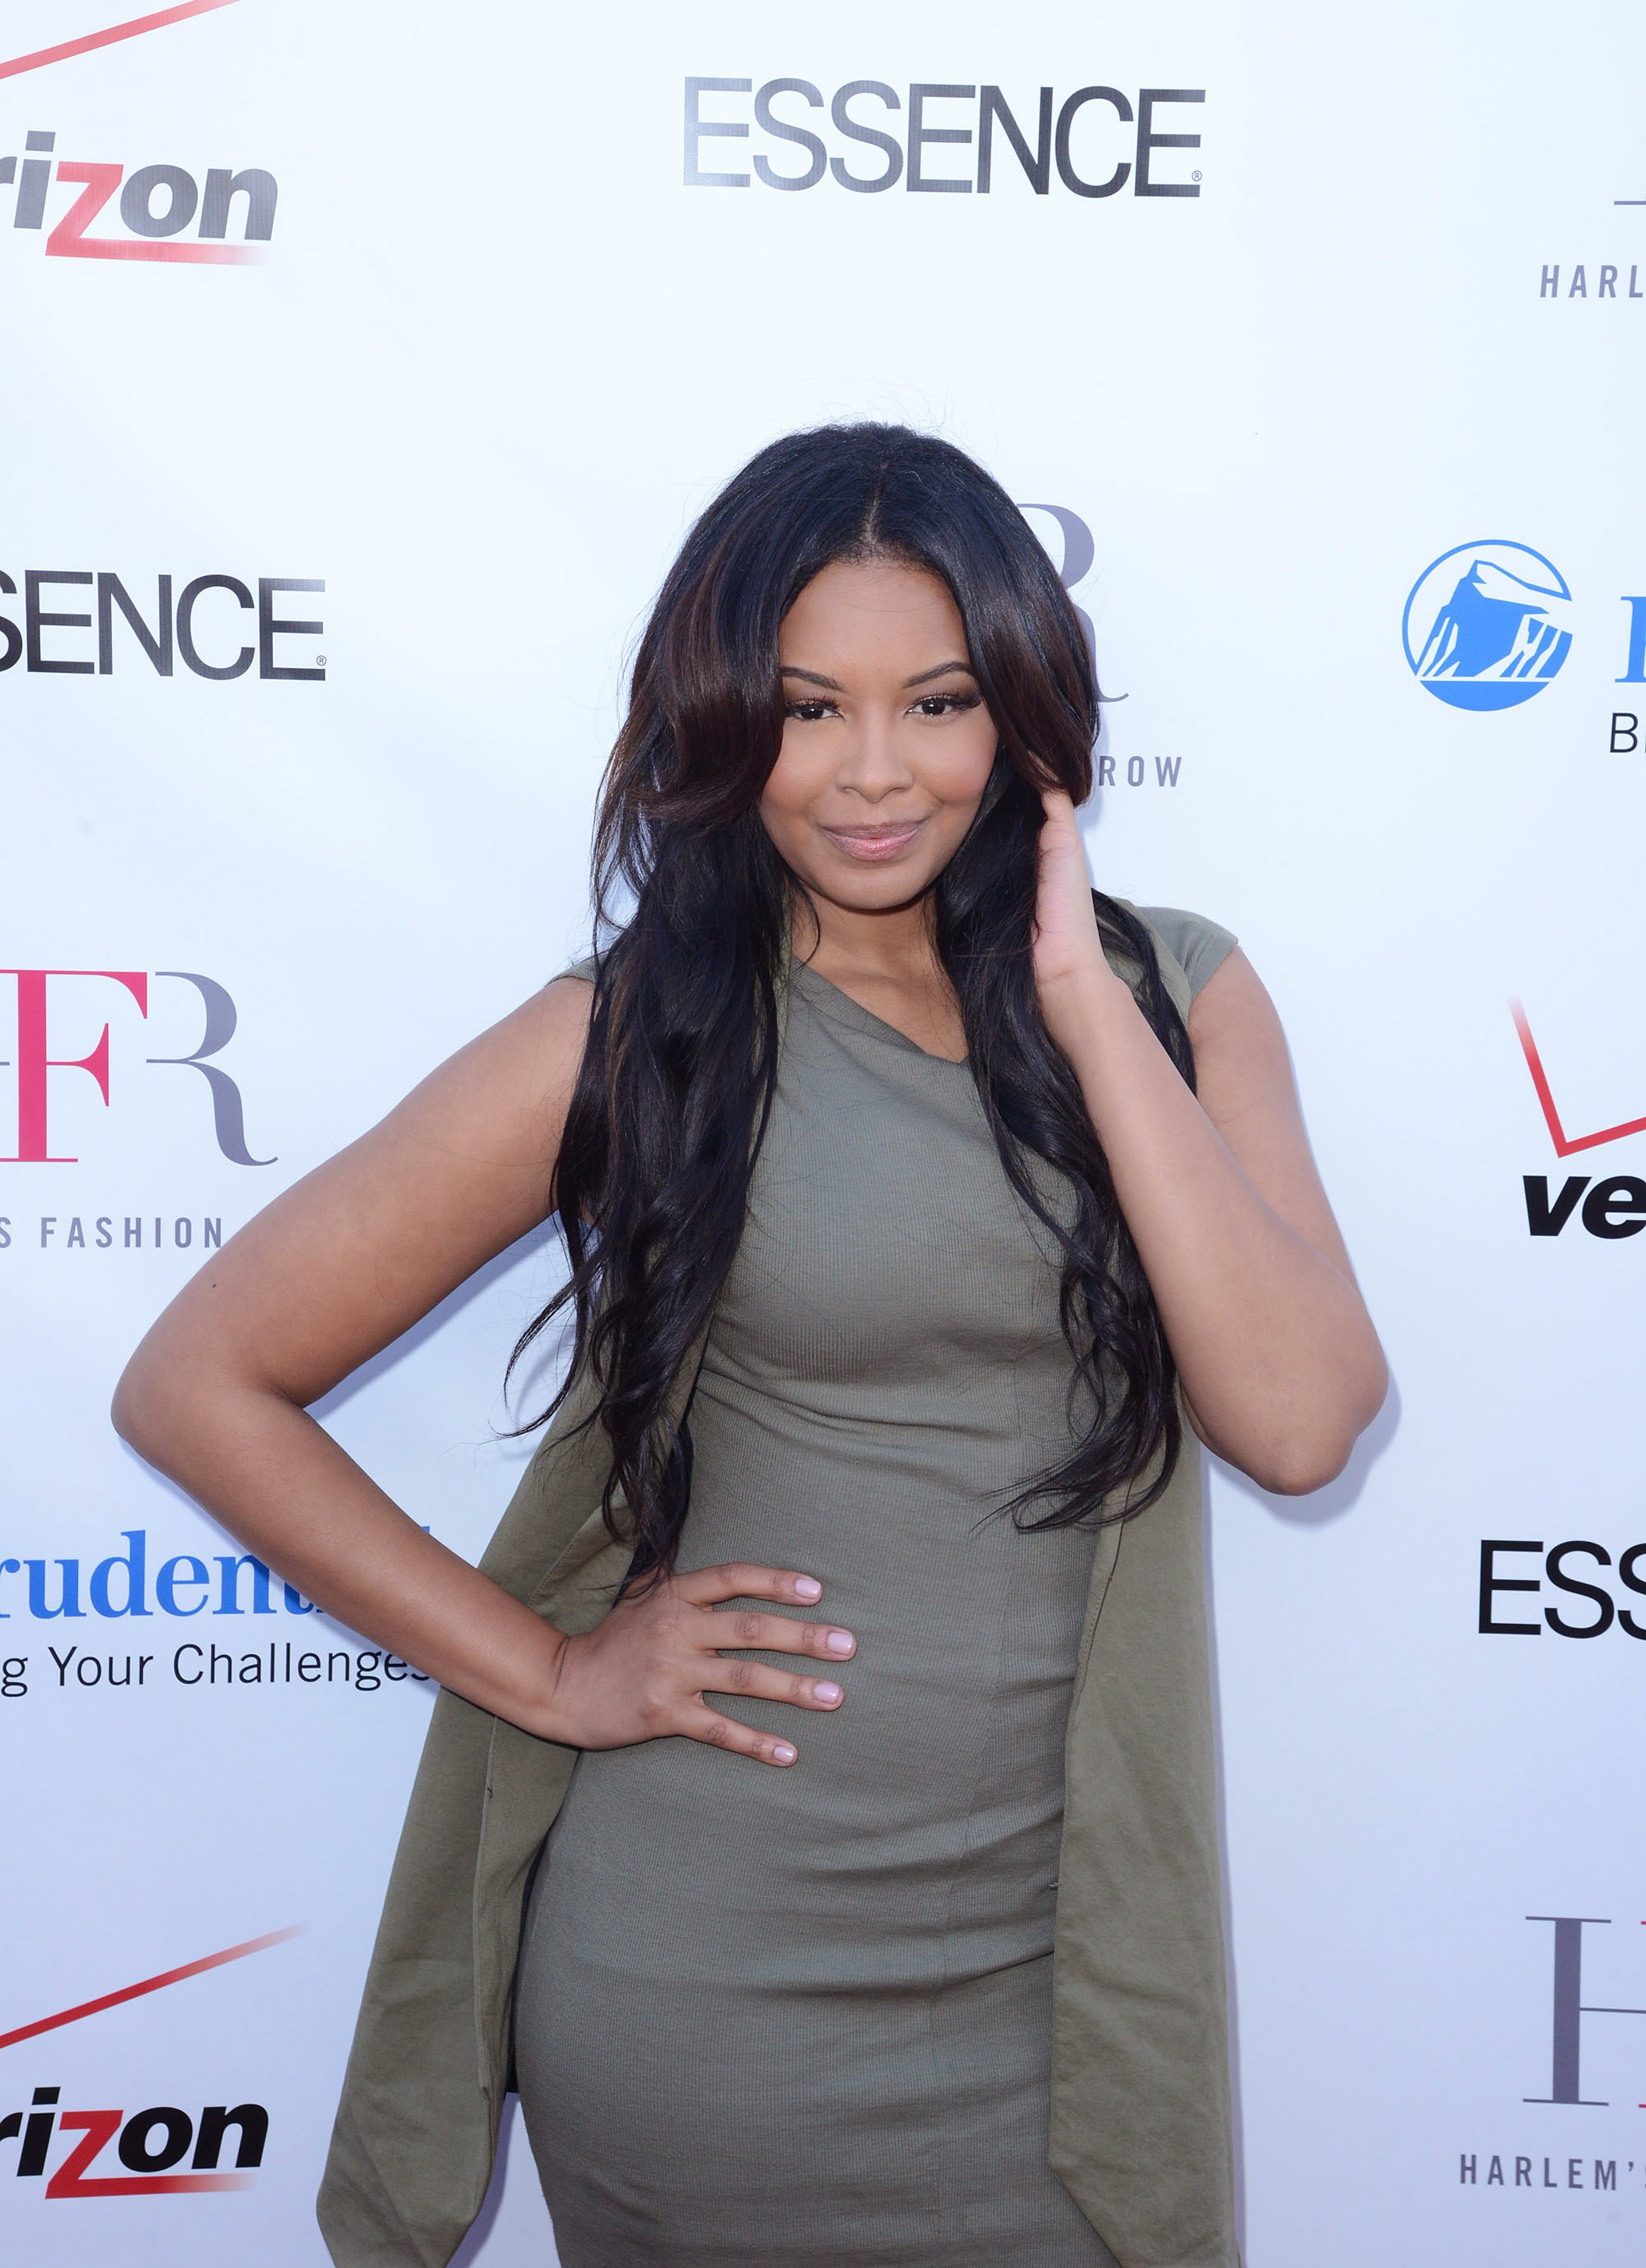 Vanessa Simmons attends Harlem's Fashion Row Style Beat in LA on February 6, 2015 in Los Angeles, California. | Source: Getty Images